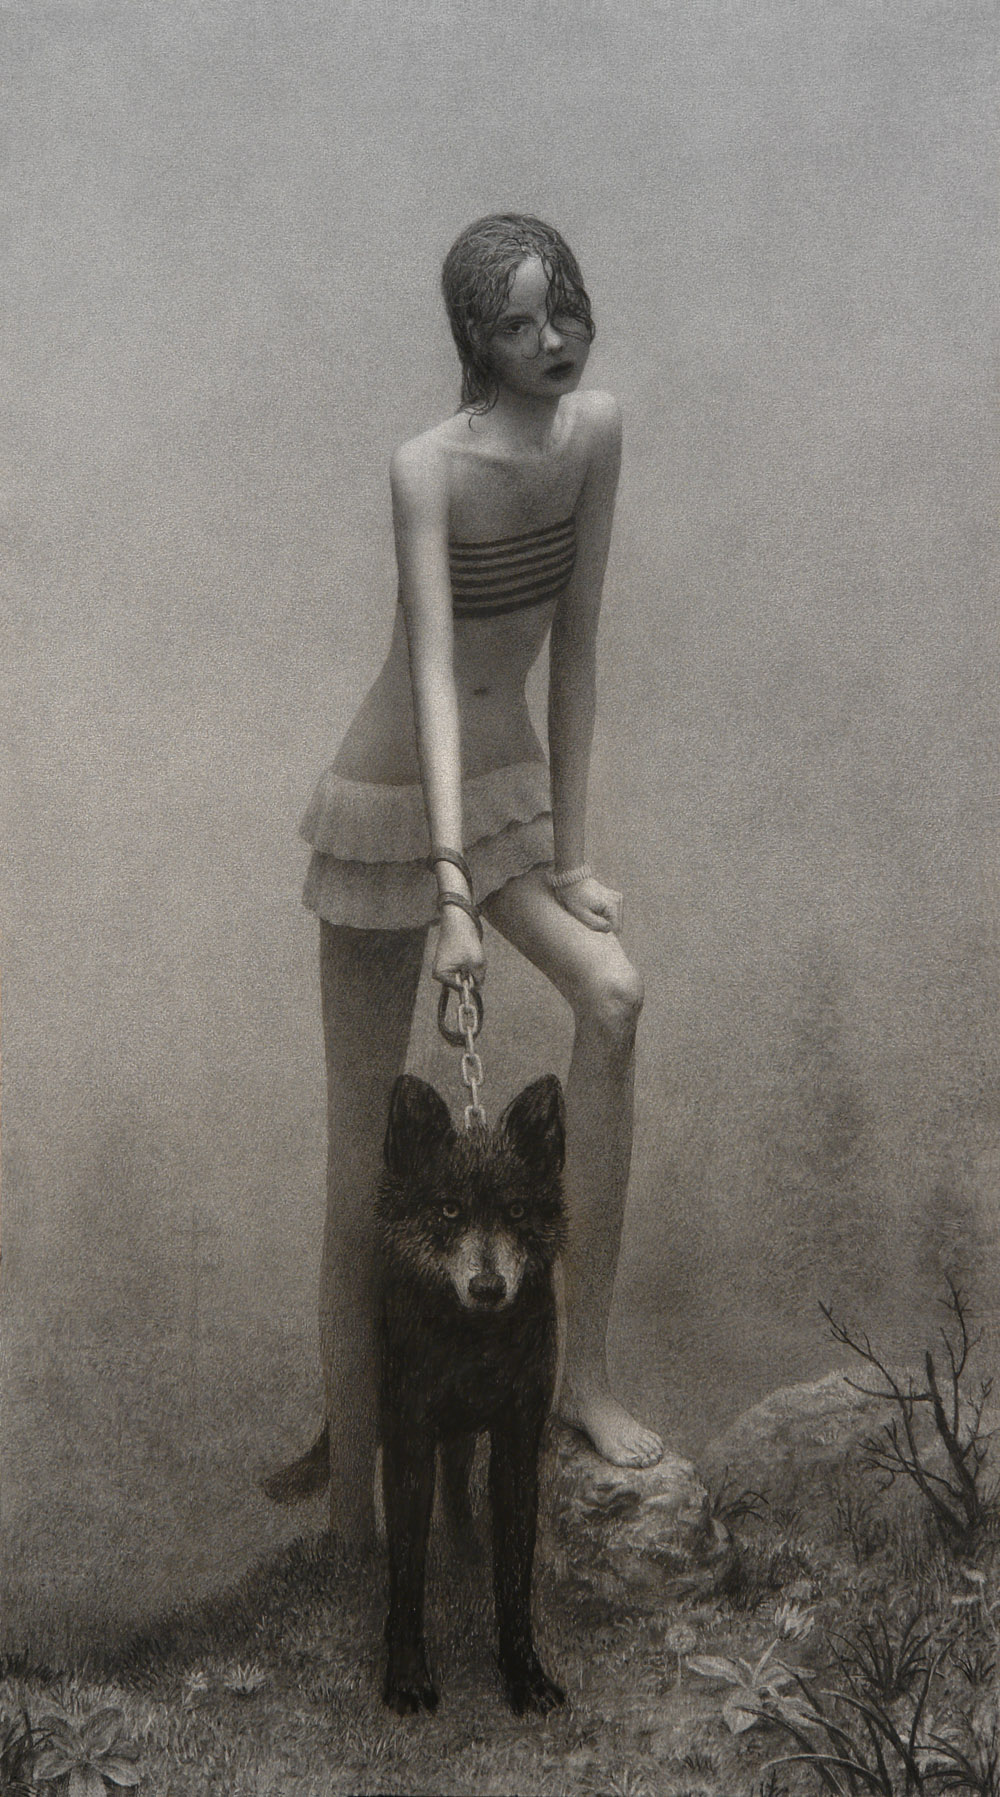 Girl With Dog, 52 x 29 in / 132 x 74 cm, 2008